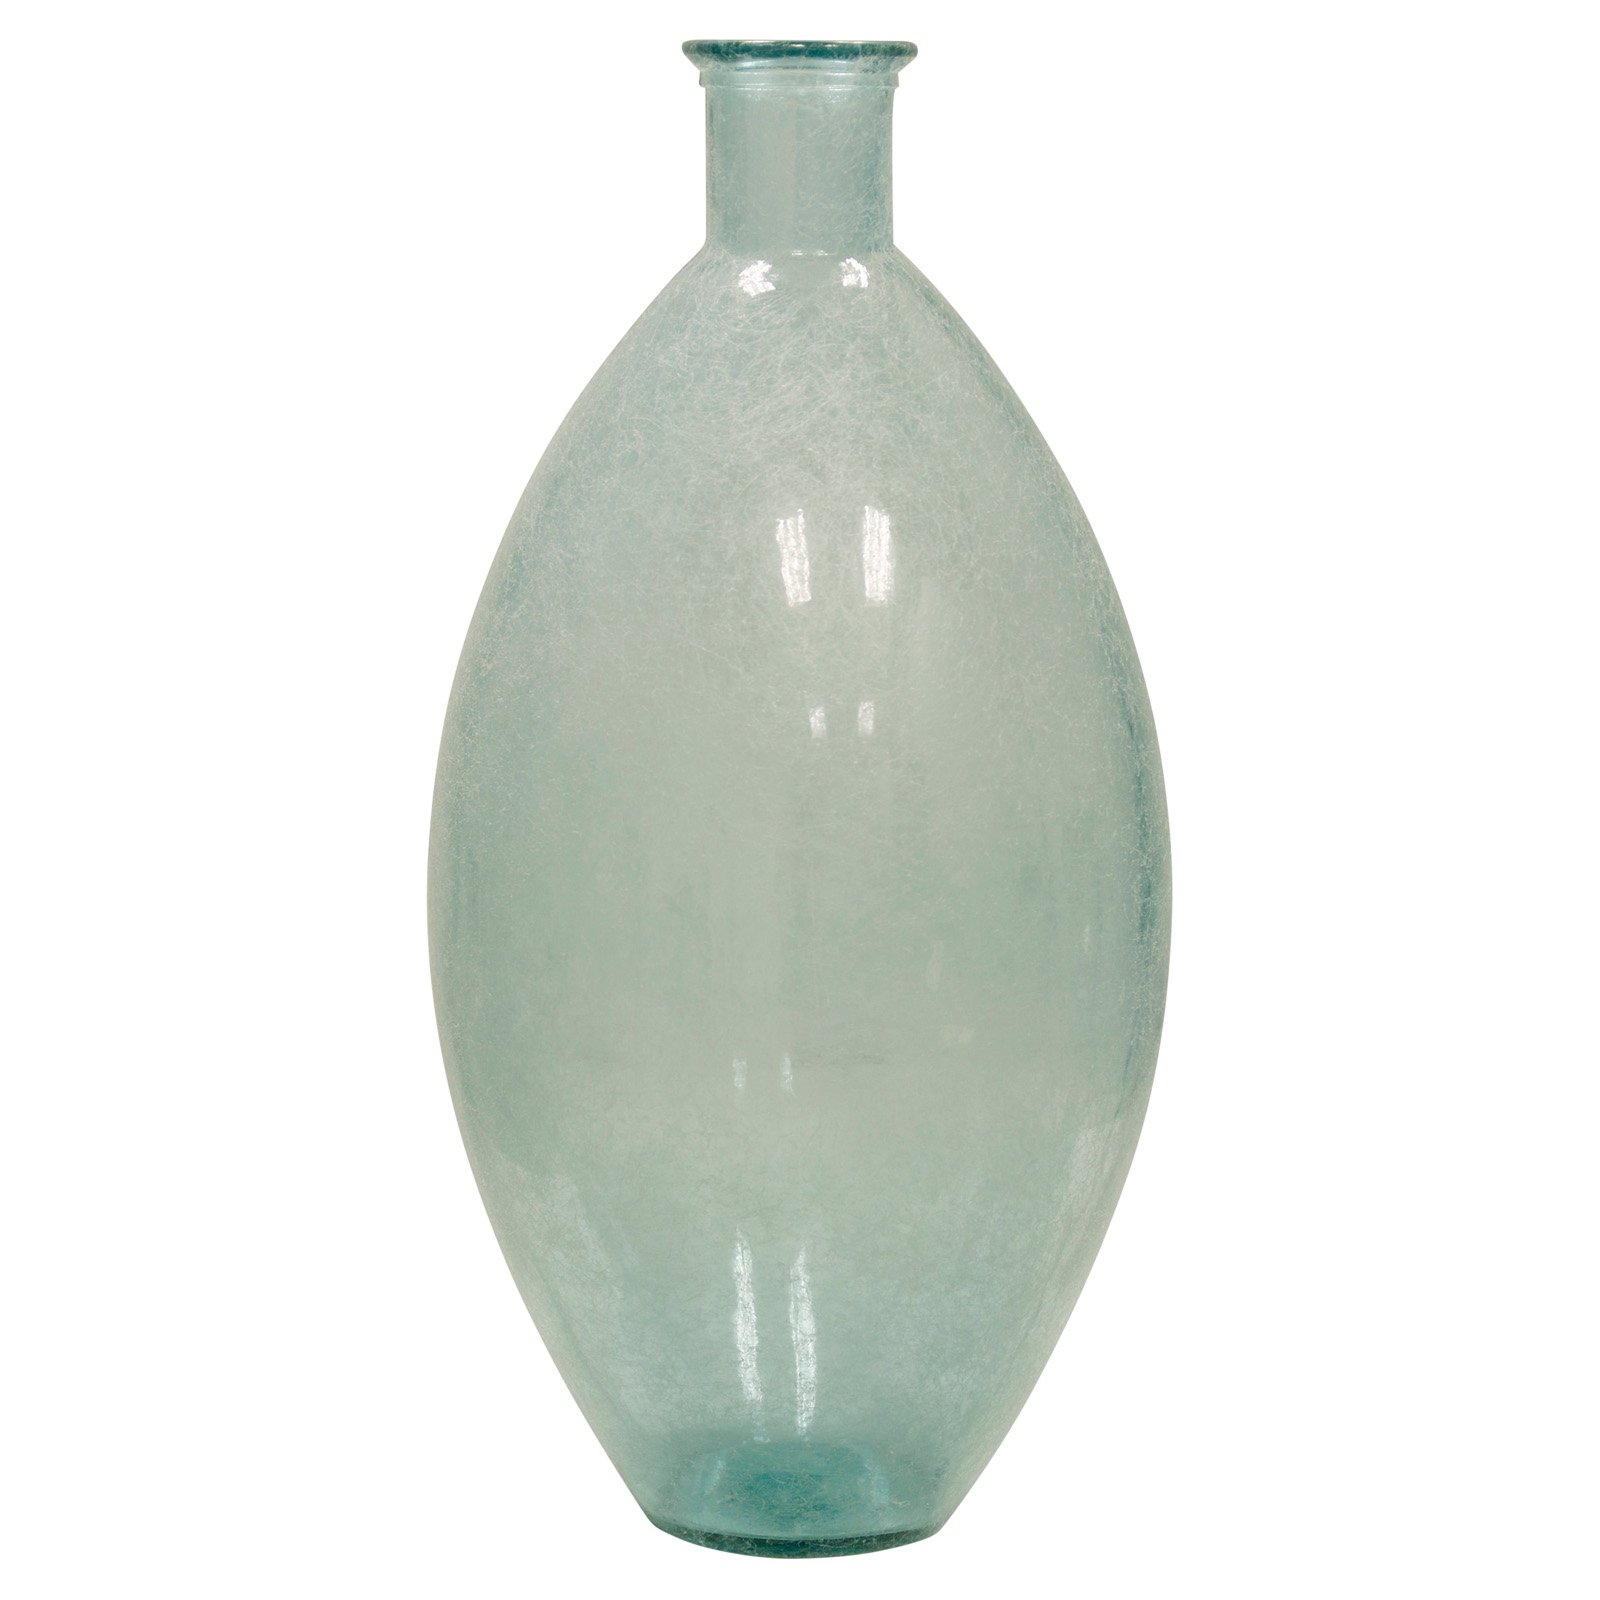 Stylecraft Frosted Decorative Glass Jug In 2019 Products Glass